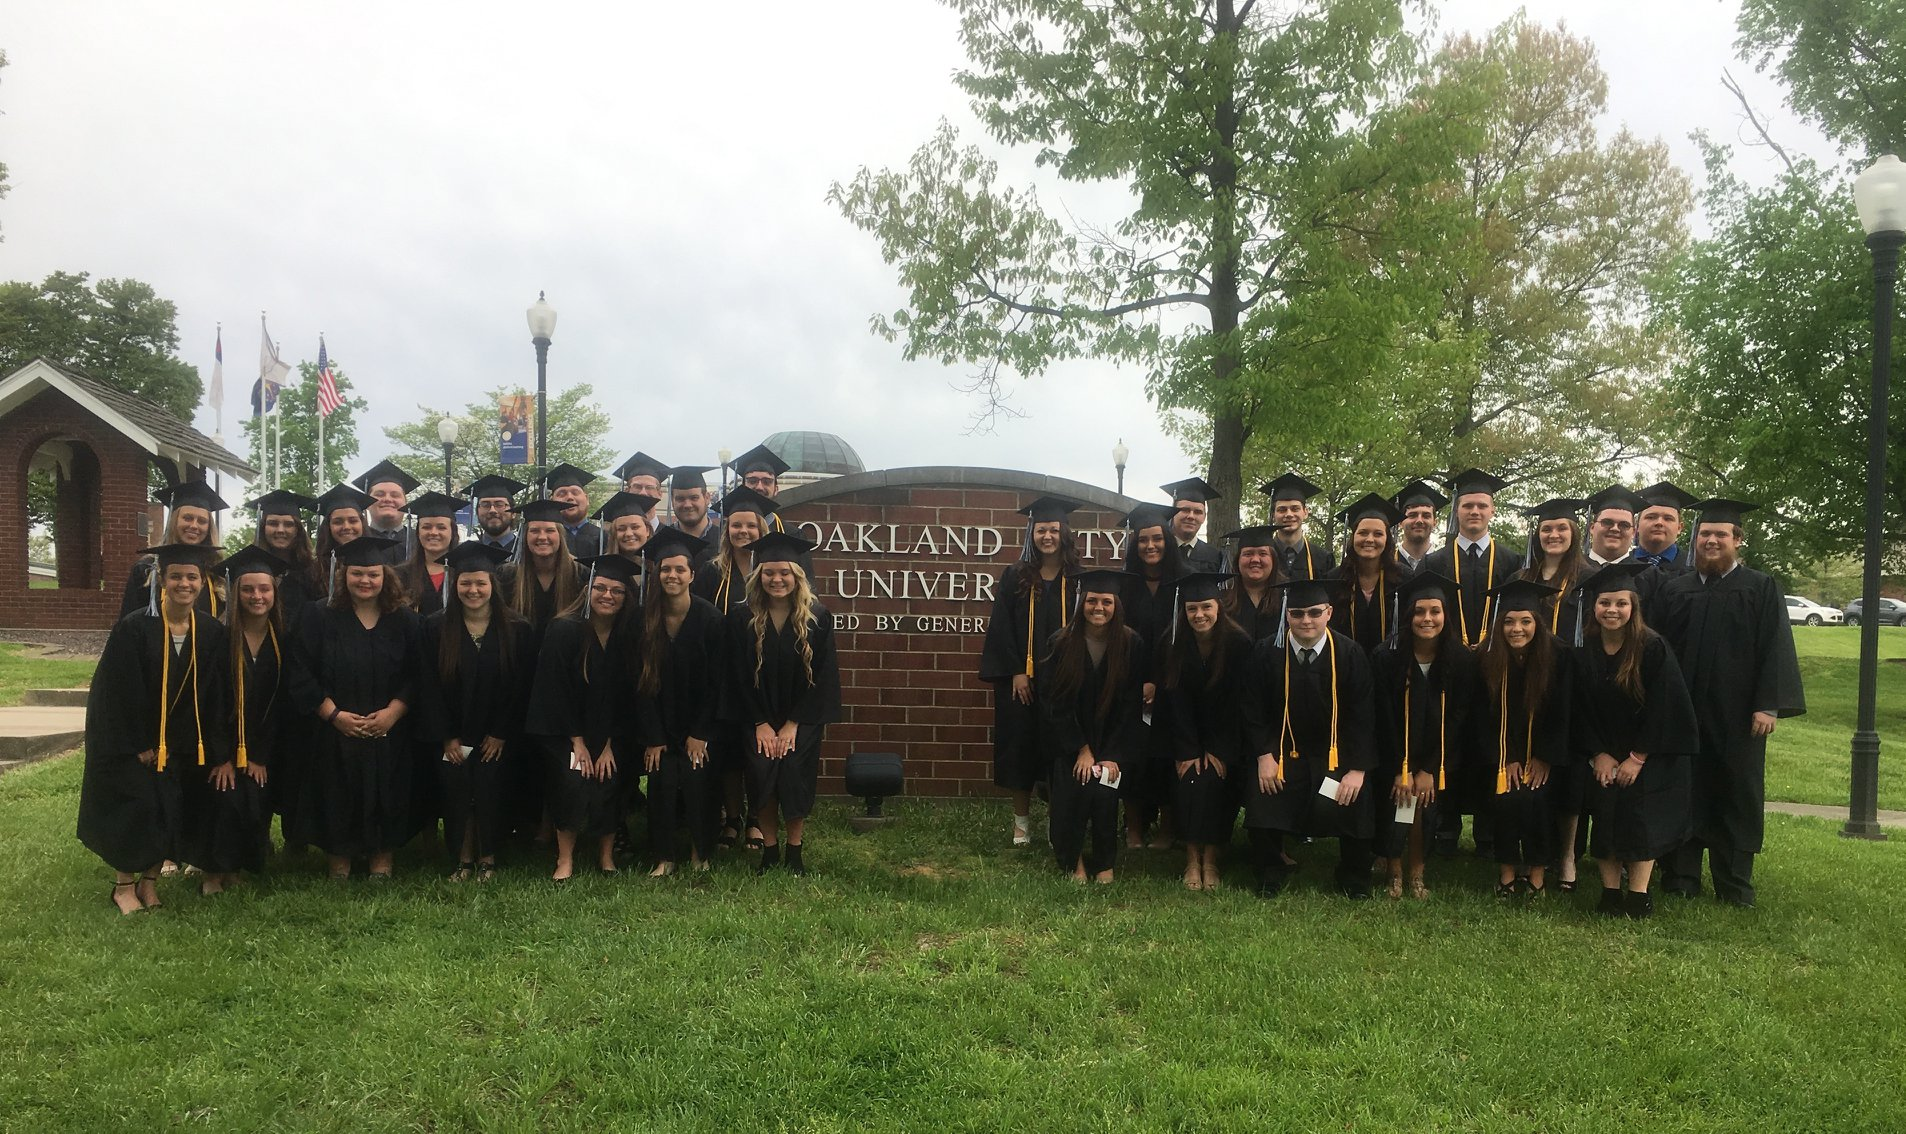 2018 NDHS Senior Graduates of Oakland City University